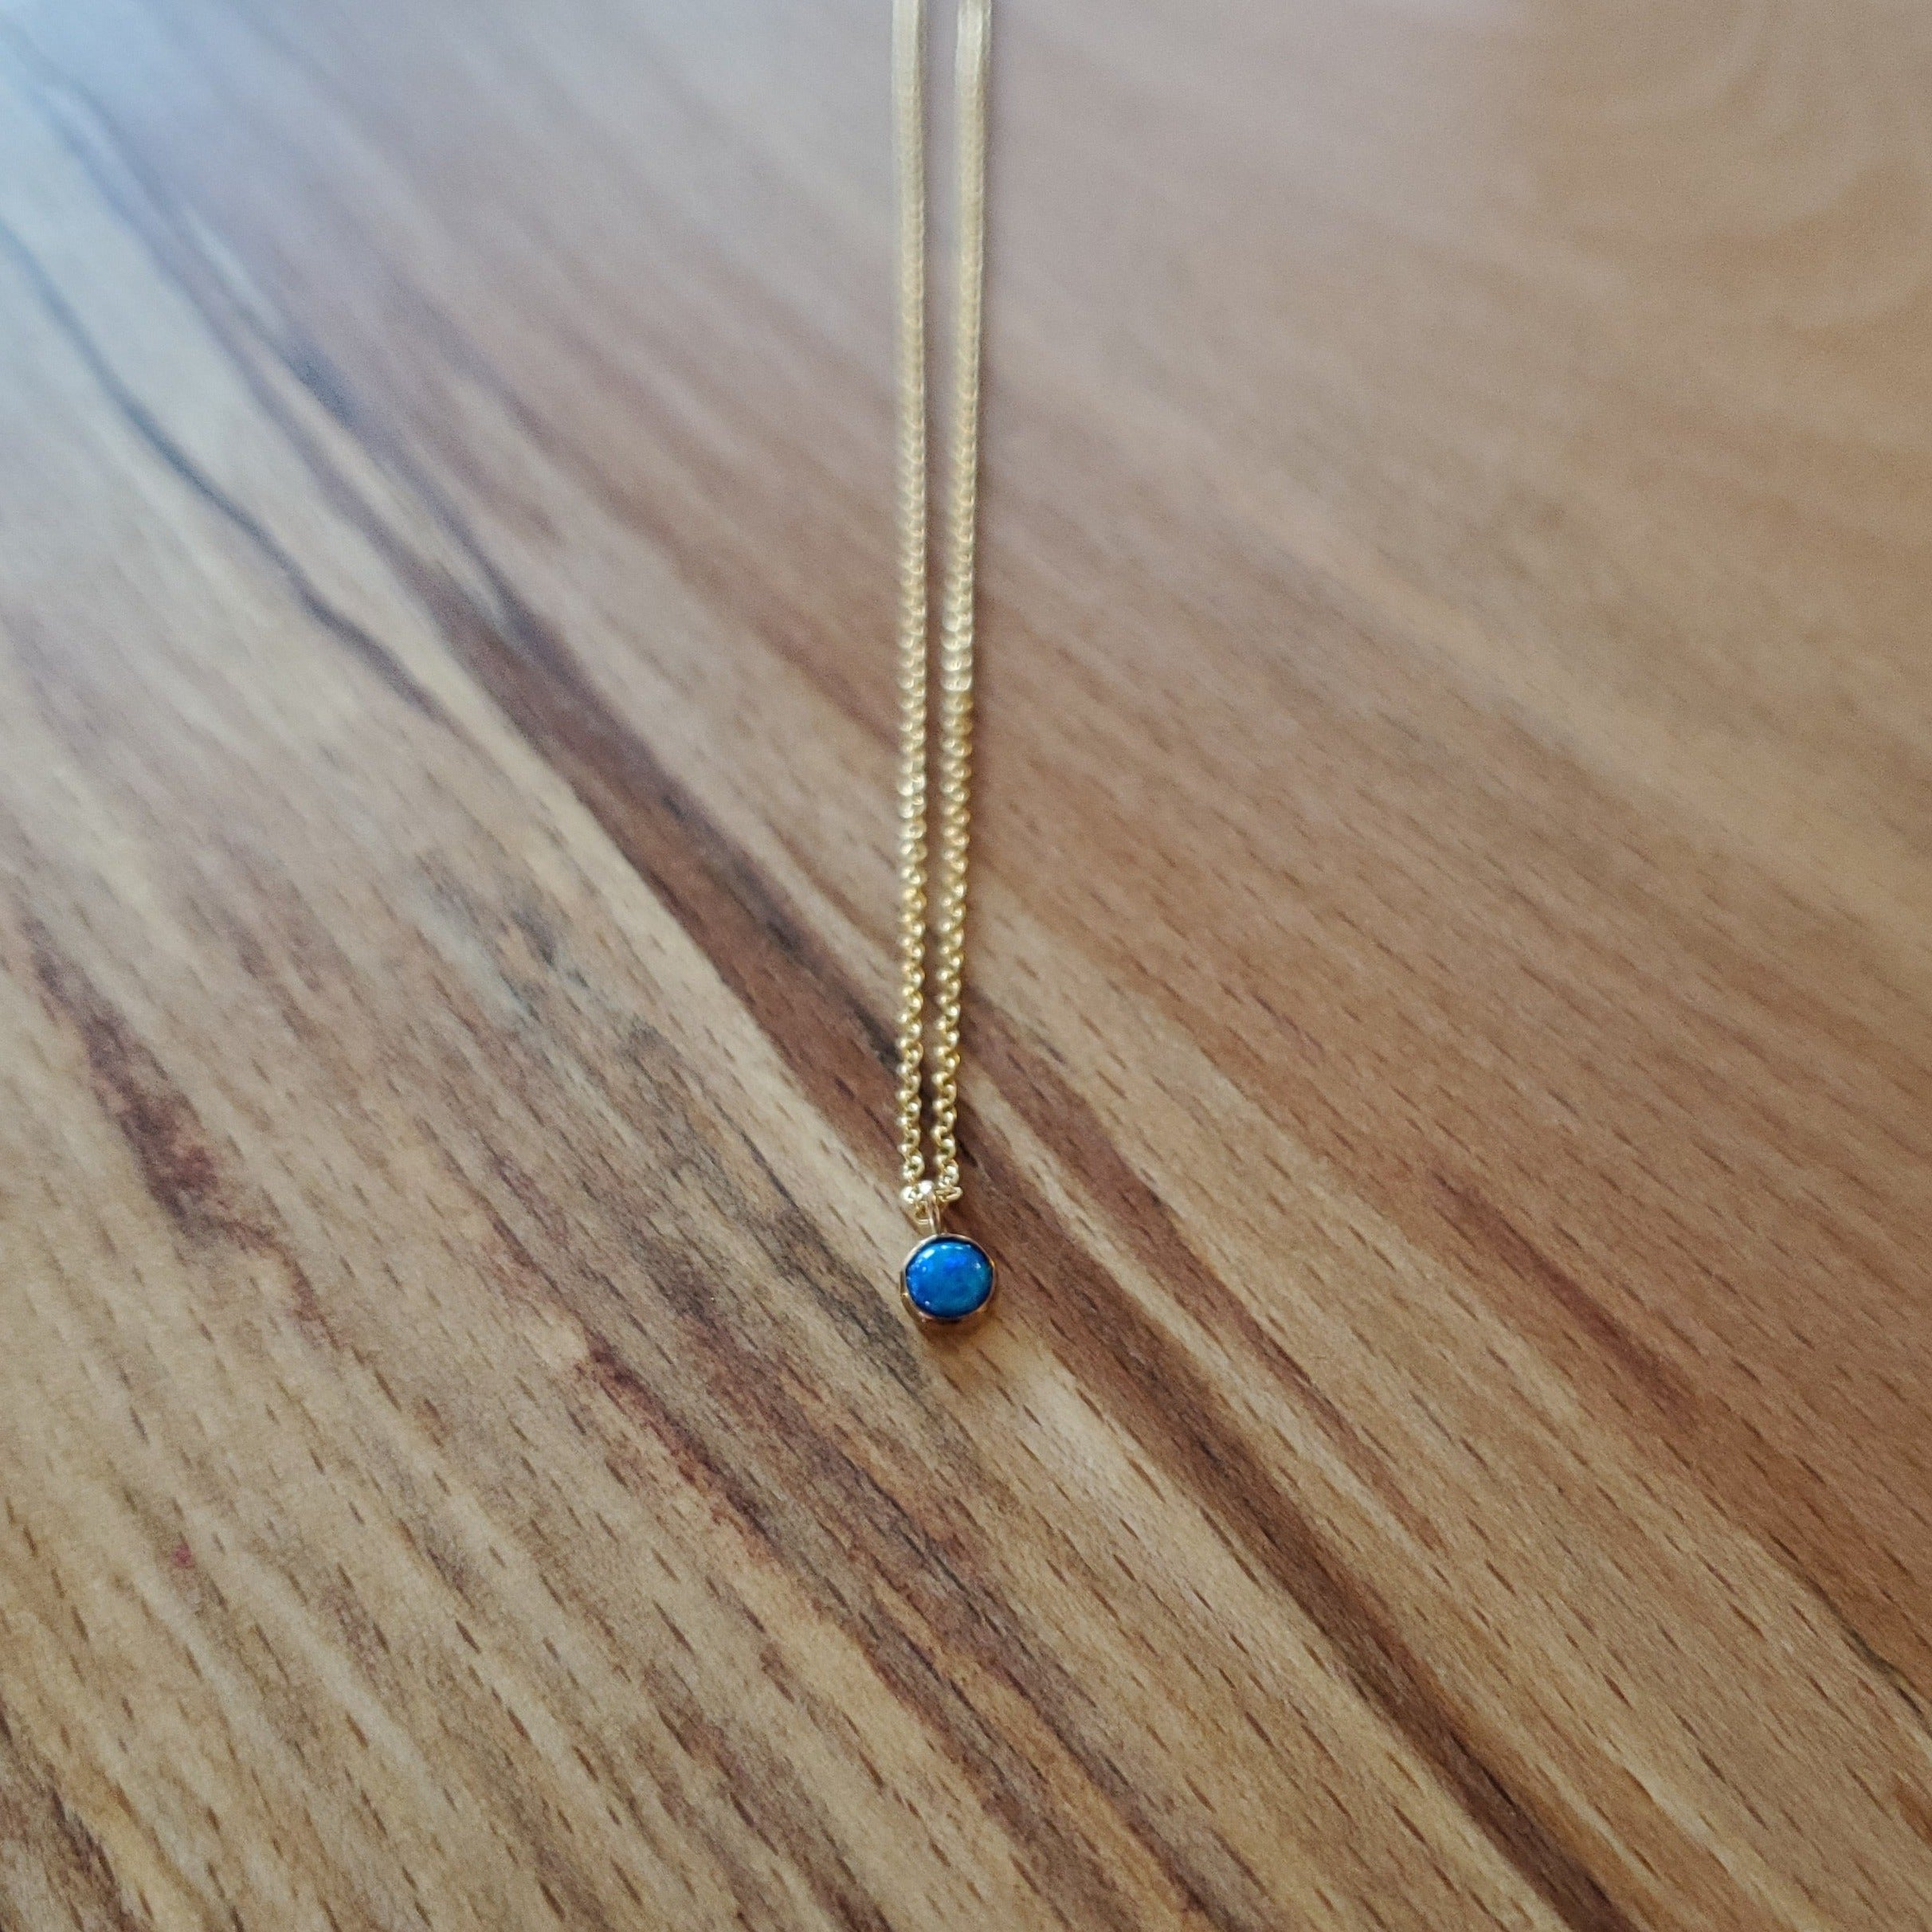 Dainty Blue Opal Pendant + Gold Fill Necklace